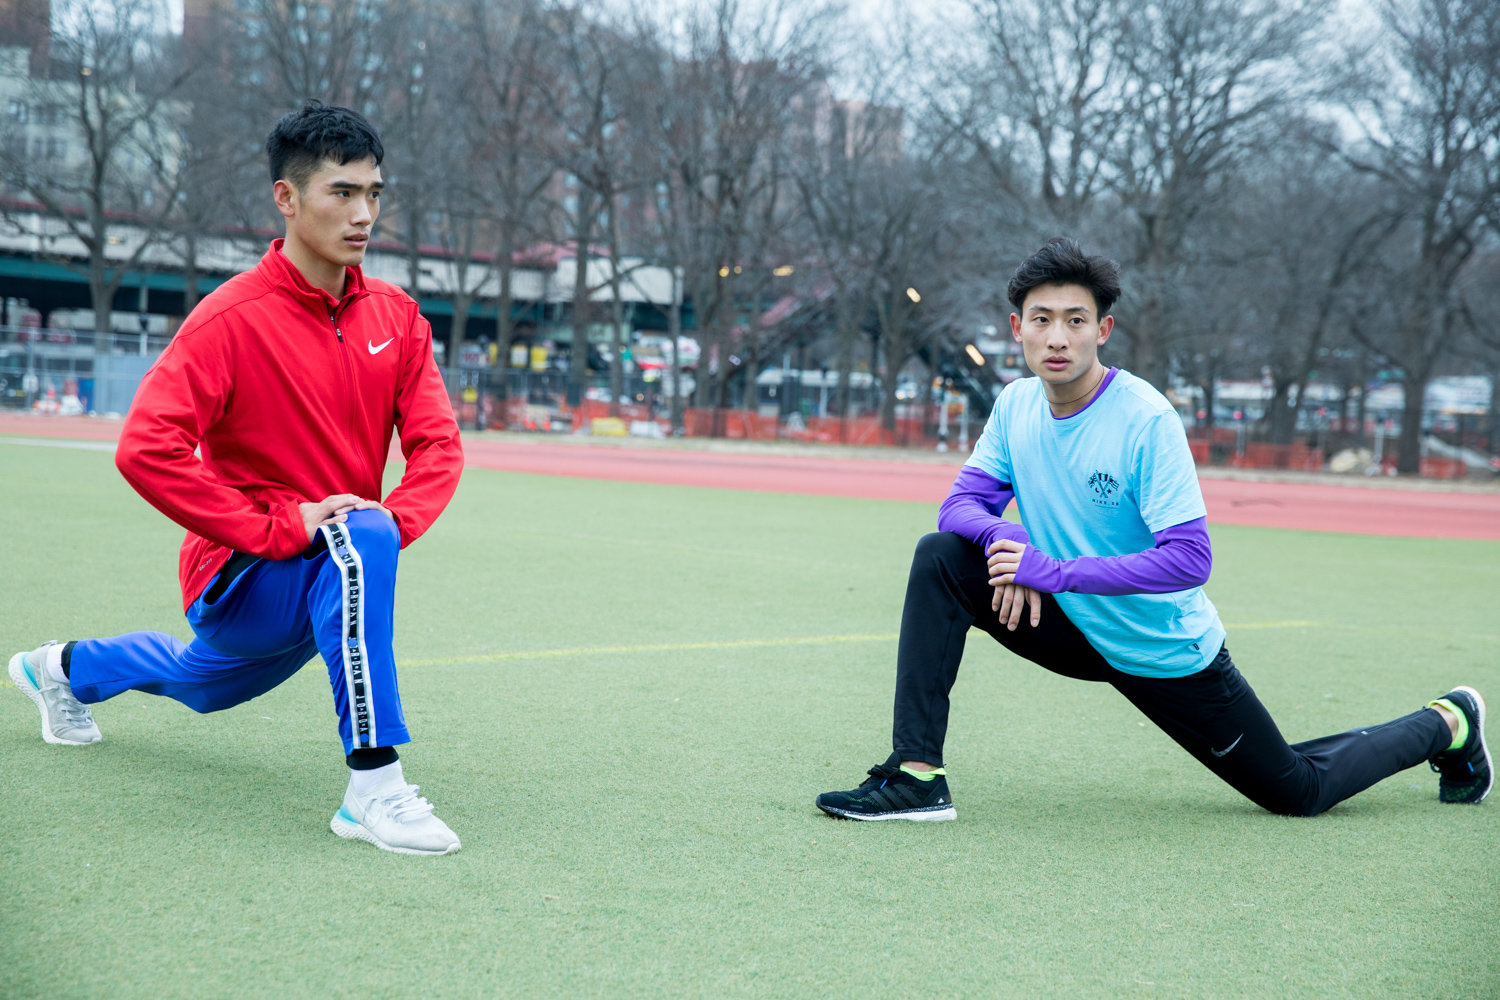 Meng Fanxu, left, and You Junjie stretch after running exercises with Manhattan College running coach Matt Centrowitz in Van Cortlandt Park.